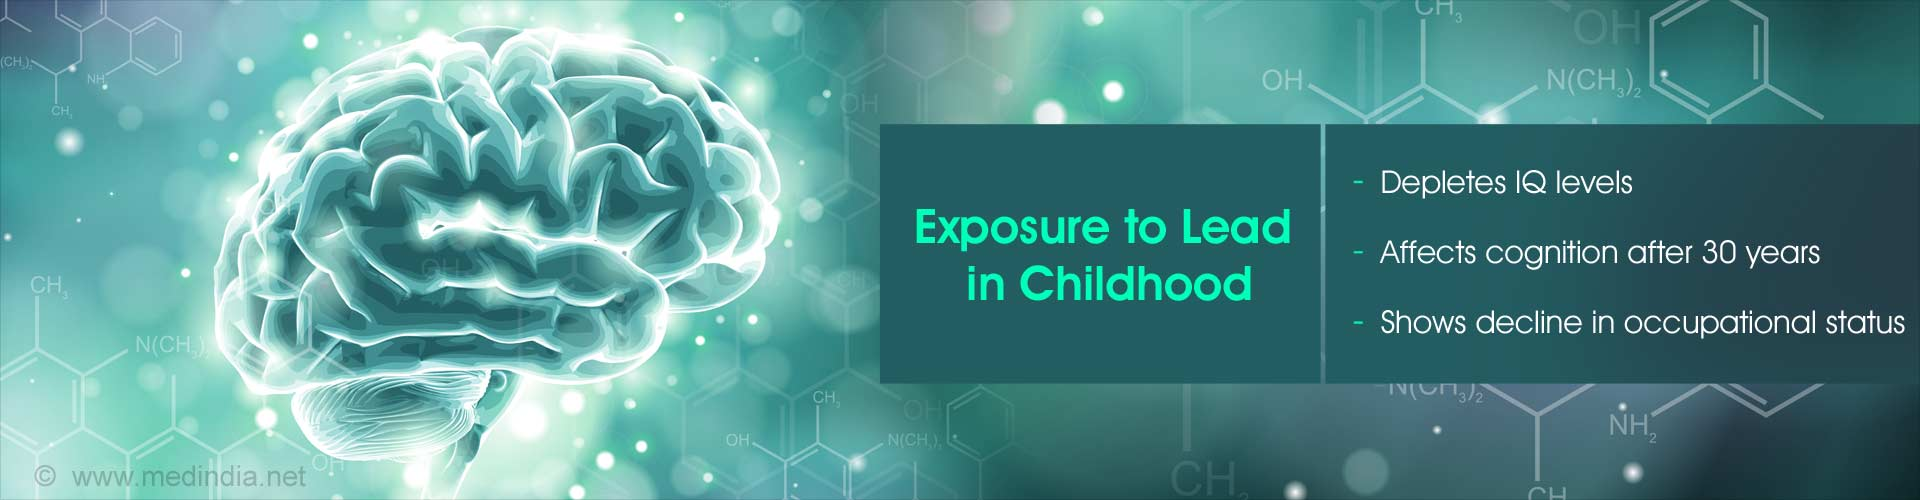 Exposure to lead in childhood